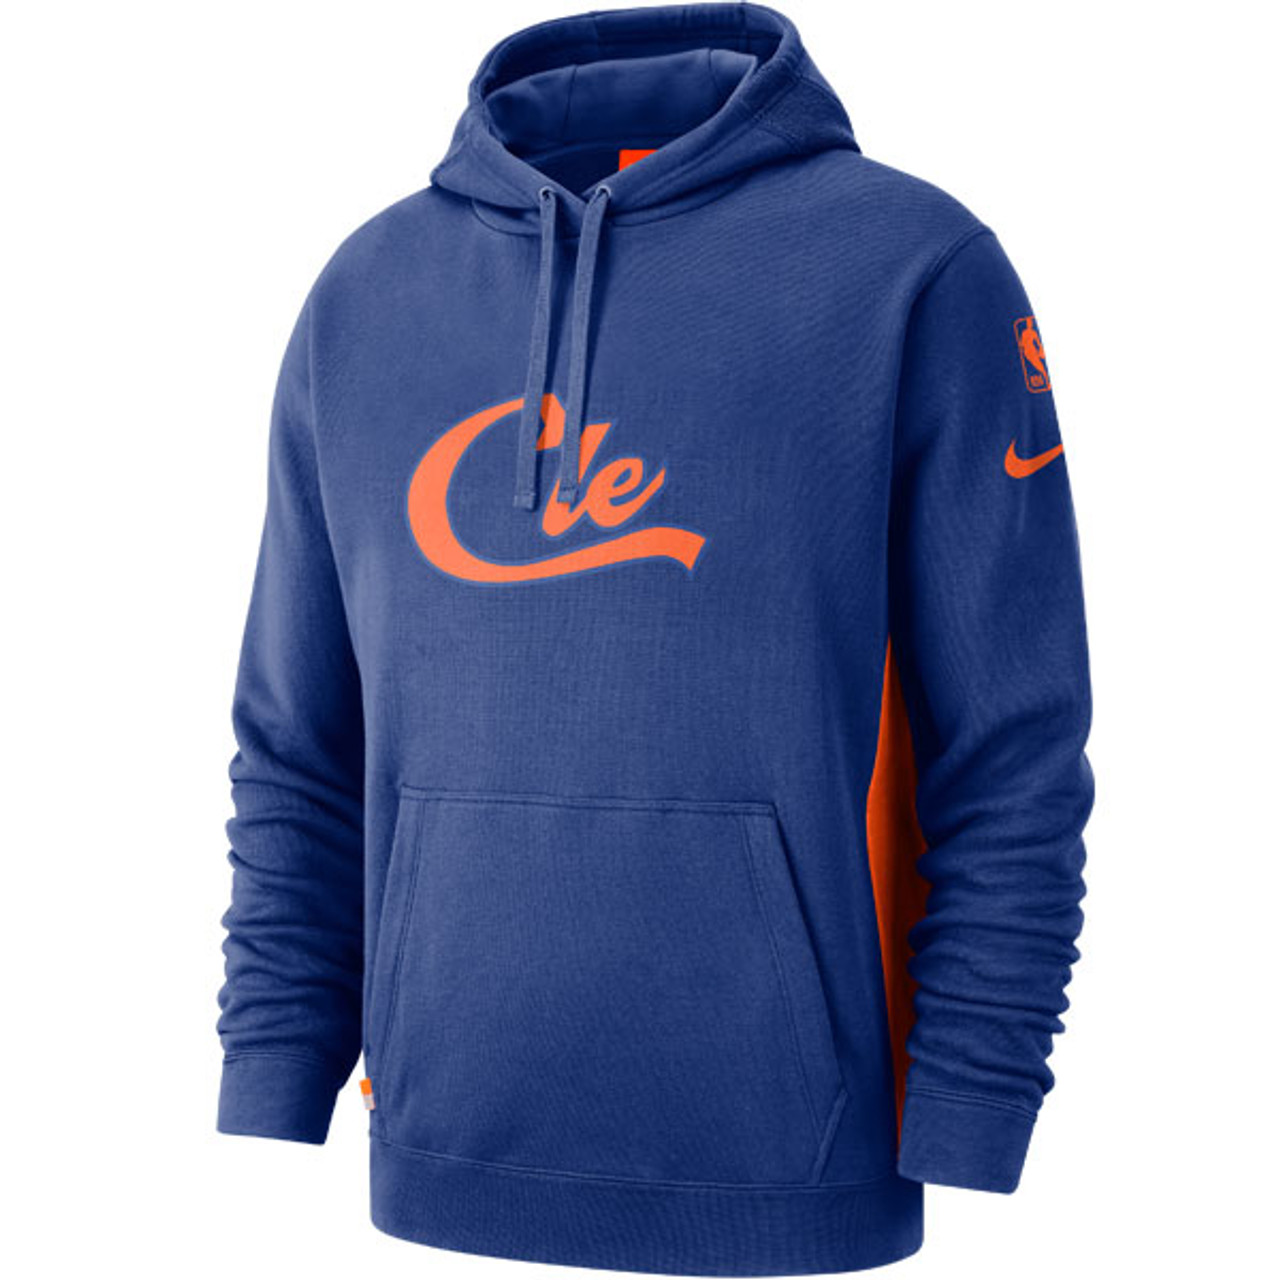 b14b4e17d City Edition Courtside Hoodie in Royal